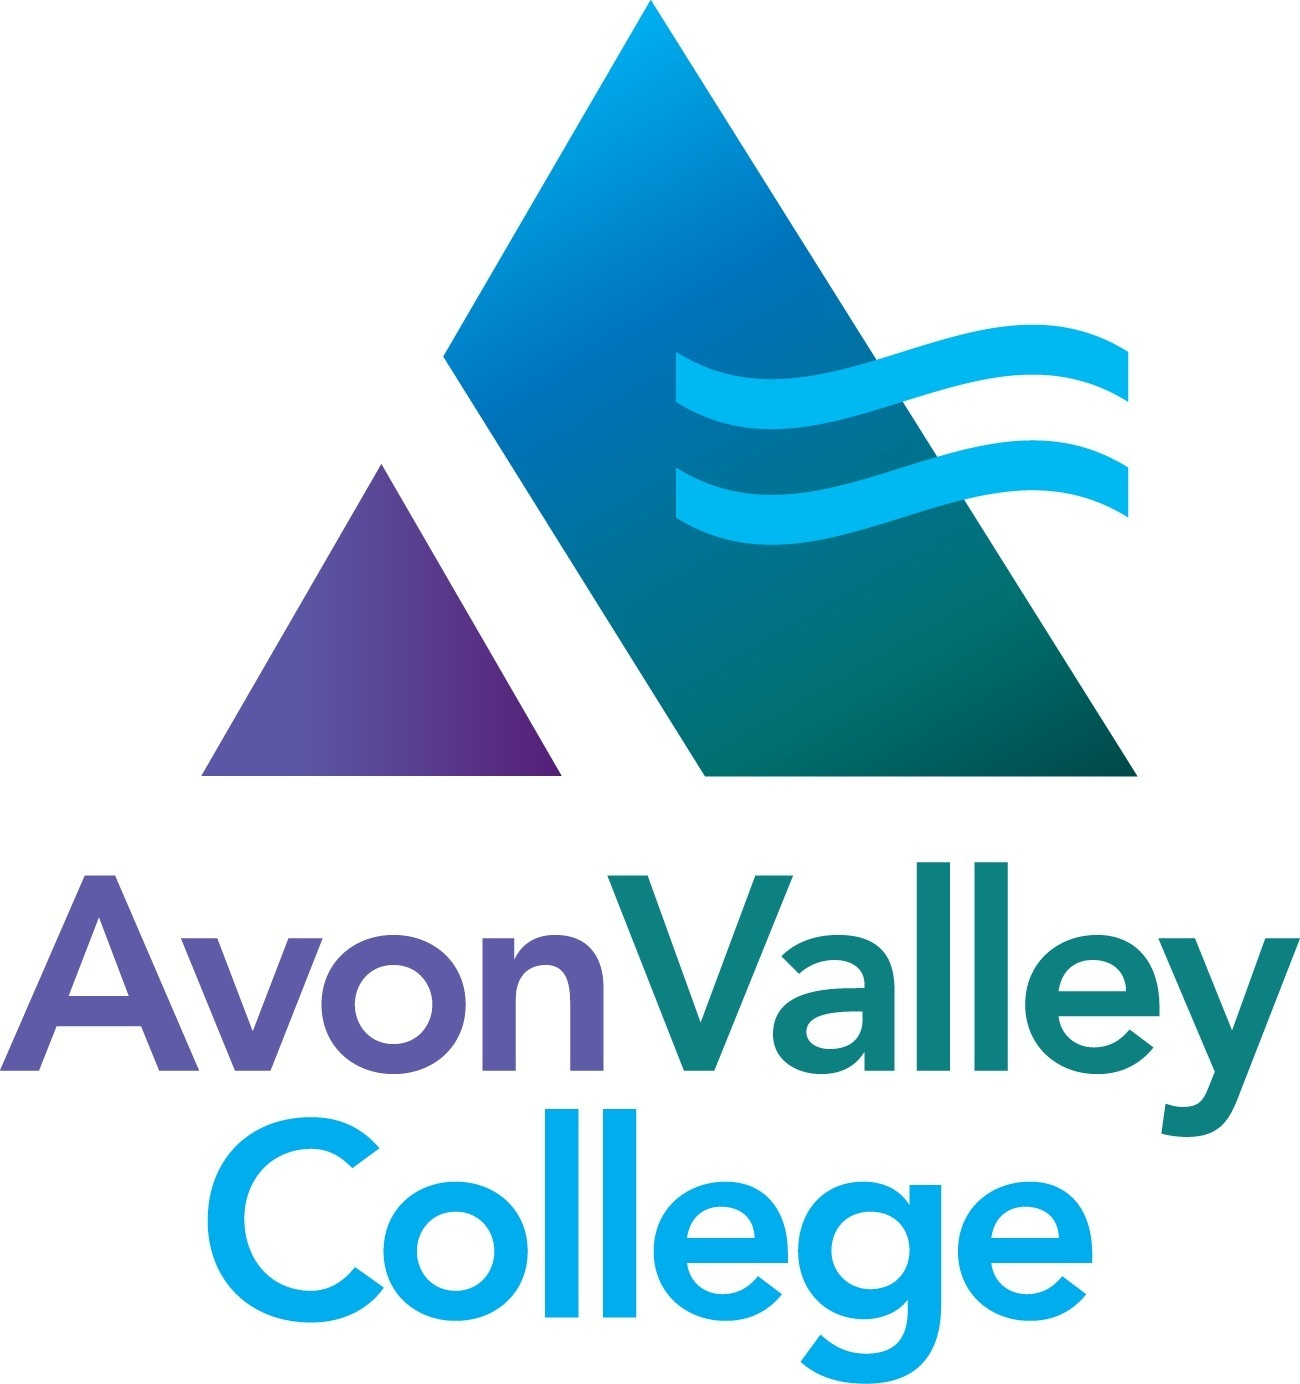 Avon Valley College